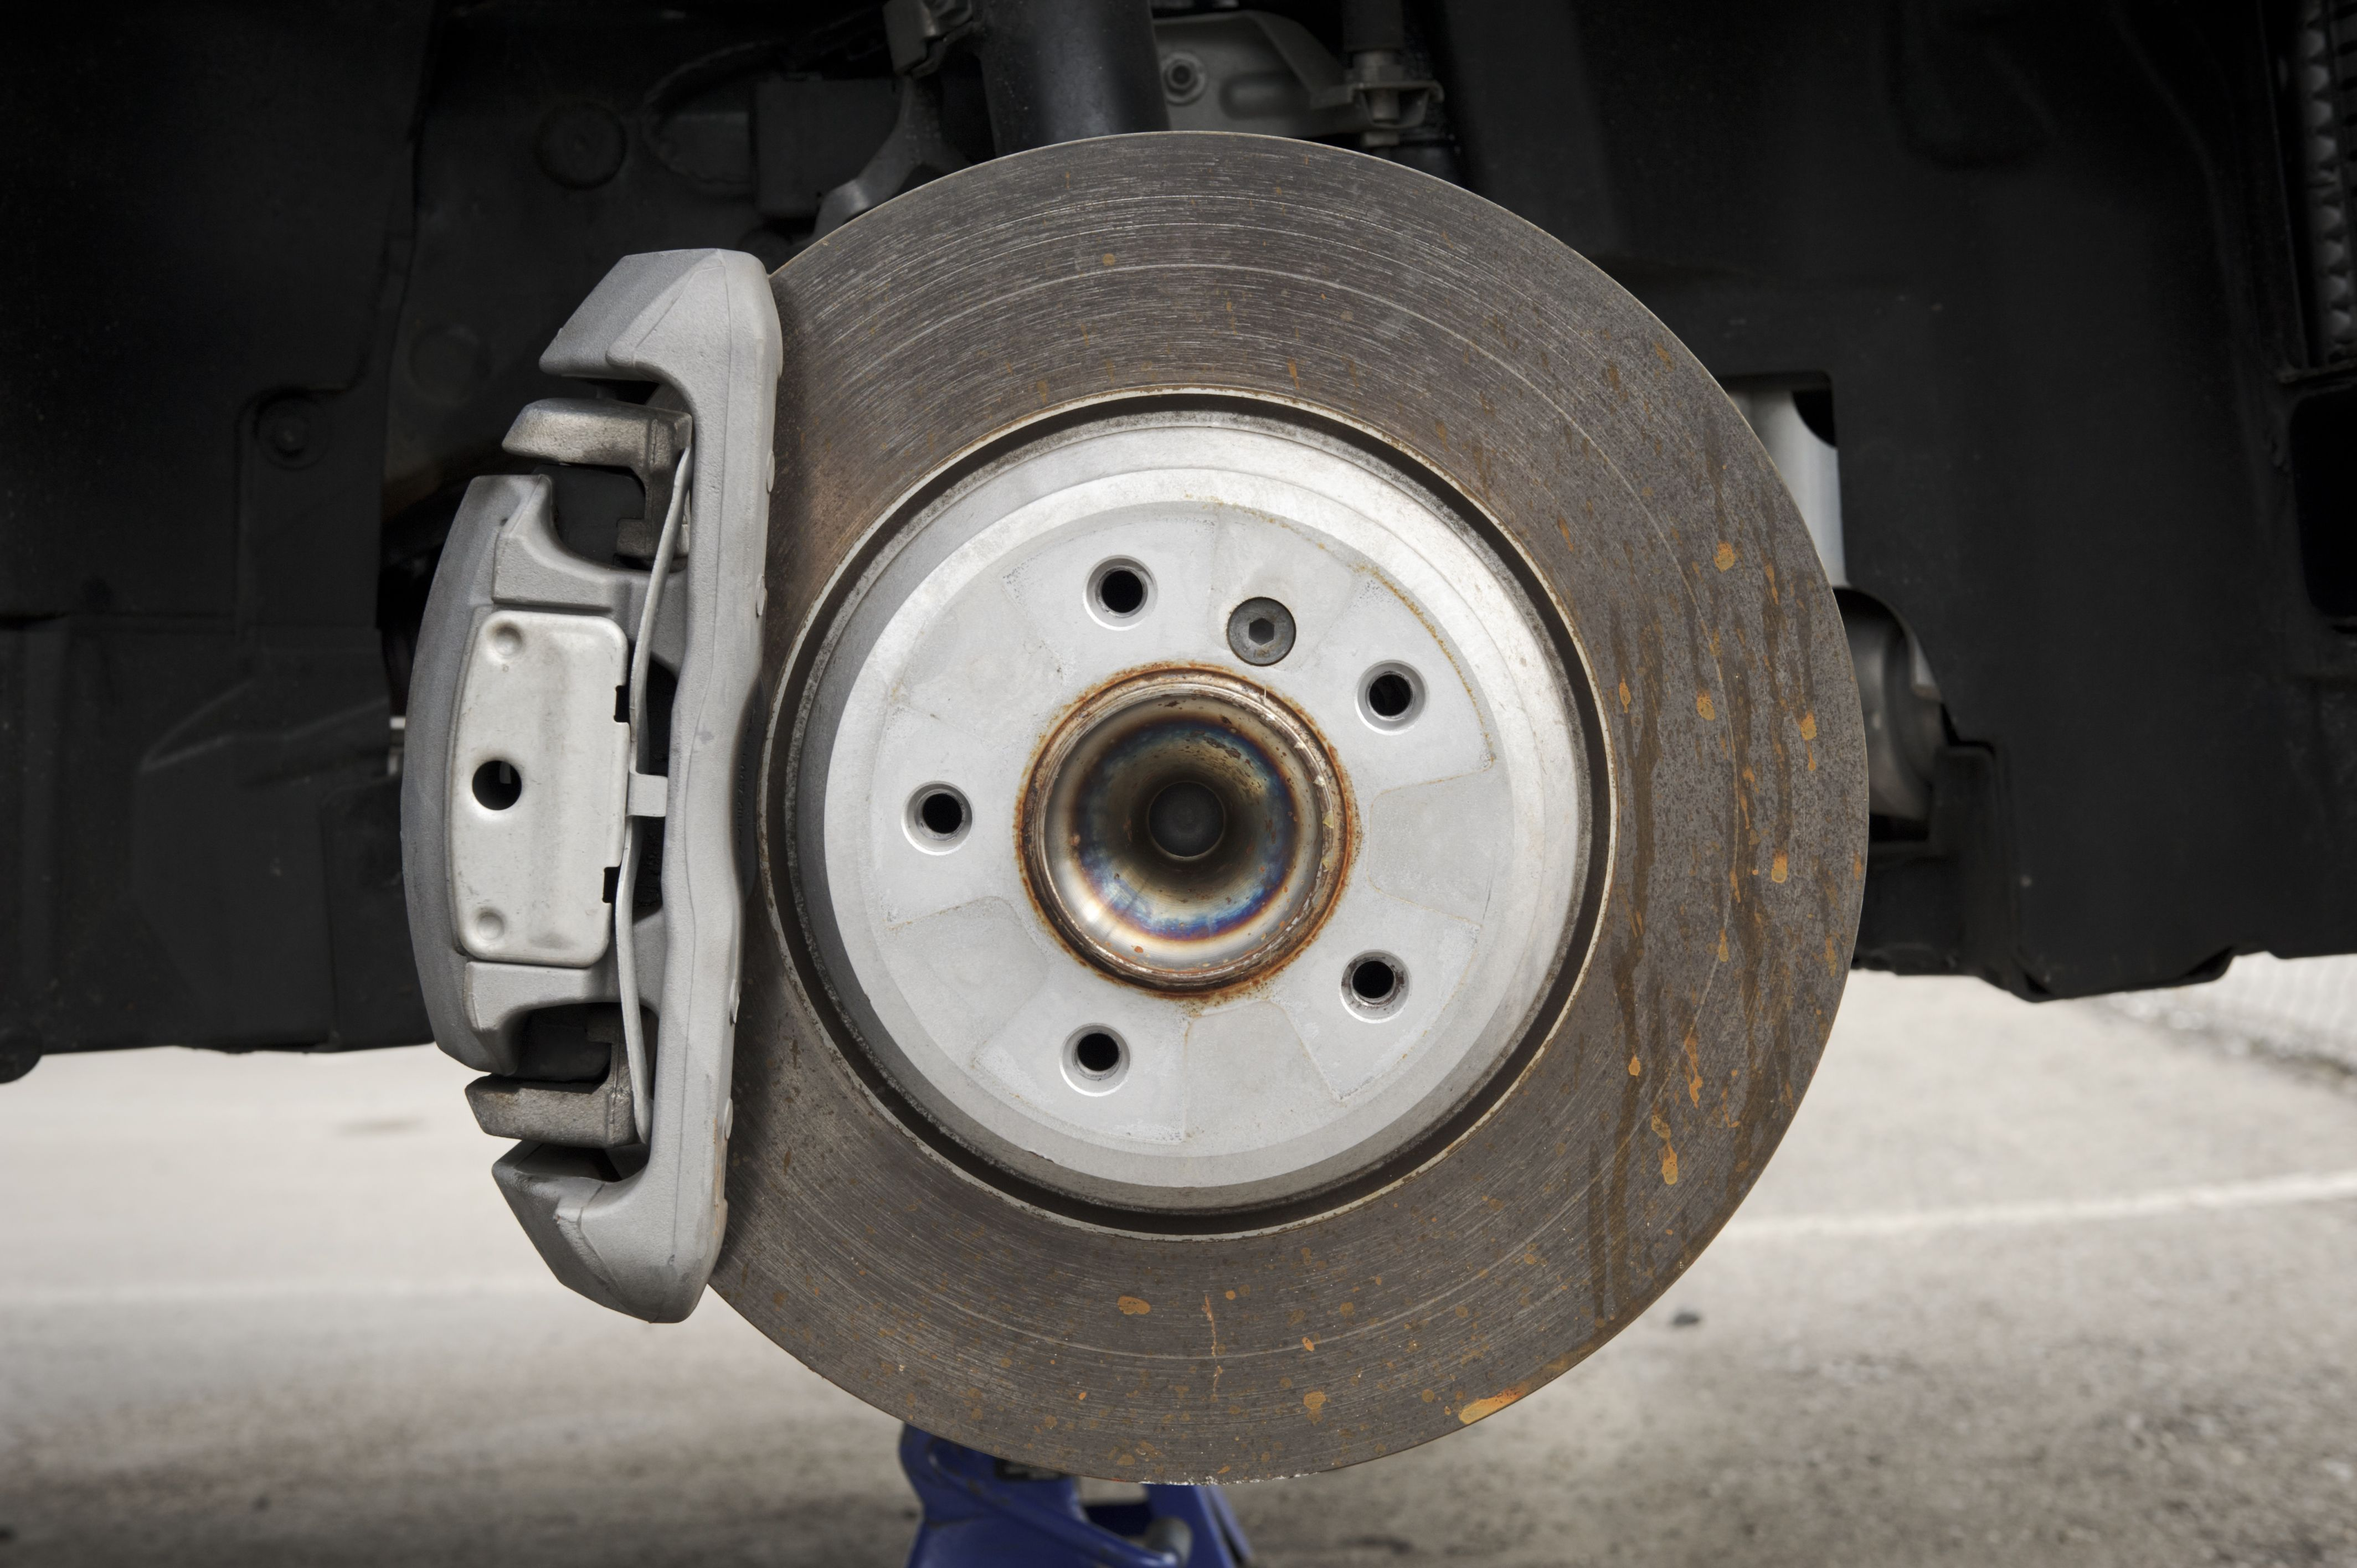 How Much Does It Cost To Change Brake Pads >> Comments On Stop It How Much Does It Cost To Replace Brake Pads